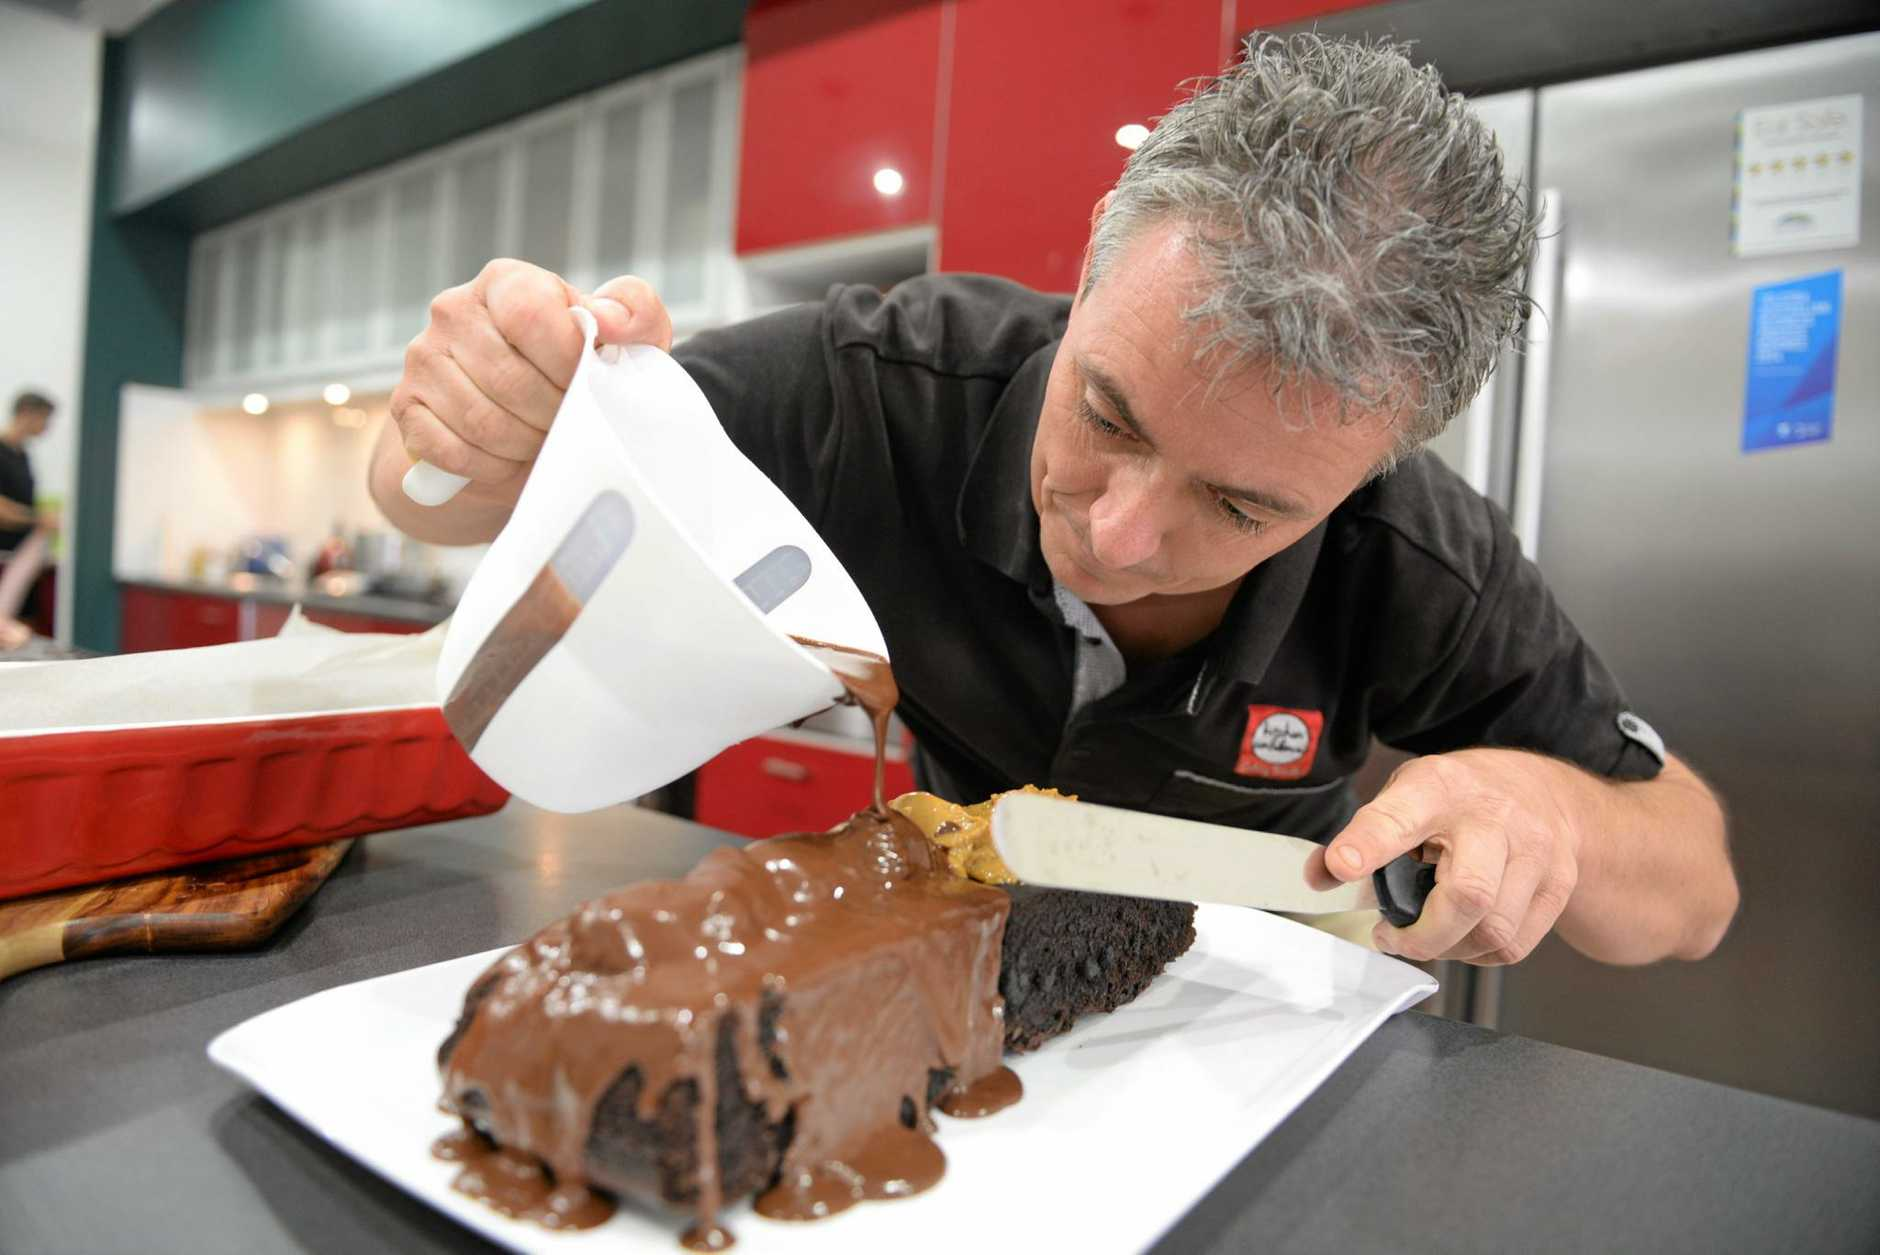 MOUTH WATERING: Wayne Bryans from Kitchen Confidence prepares a Chocolate Caramel Mud Cake. Photo: Max Fleet / NewsMail